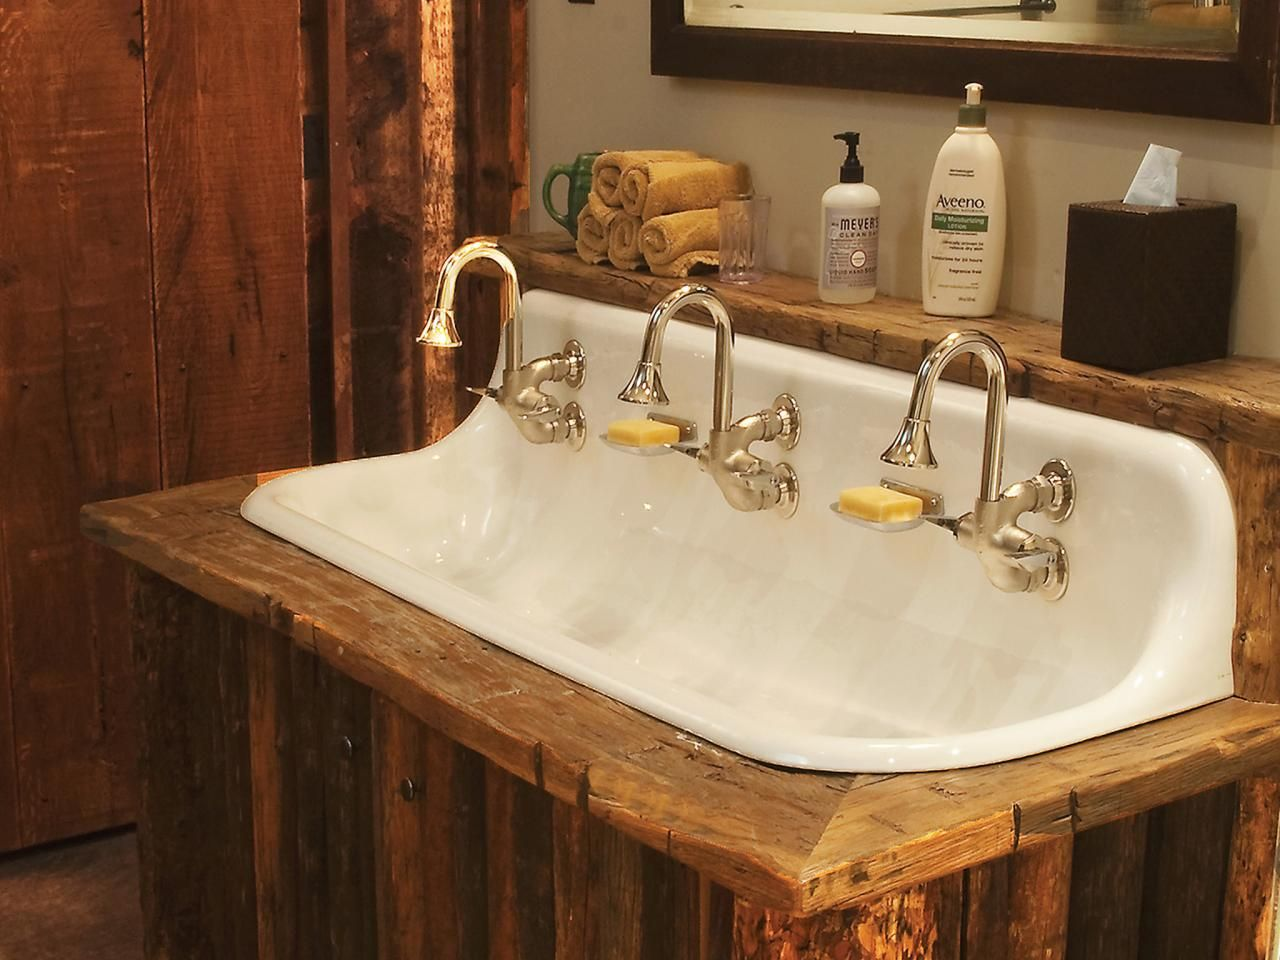 Bathroom sinks with options for everyone - Old Rustic Bathrooms Ci Rustic Elegance Cast Iron Sink Three Faucets Pg148 S4x3 From Larry